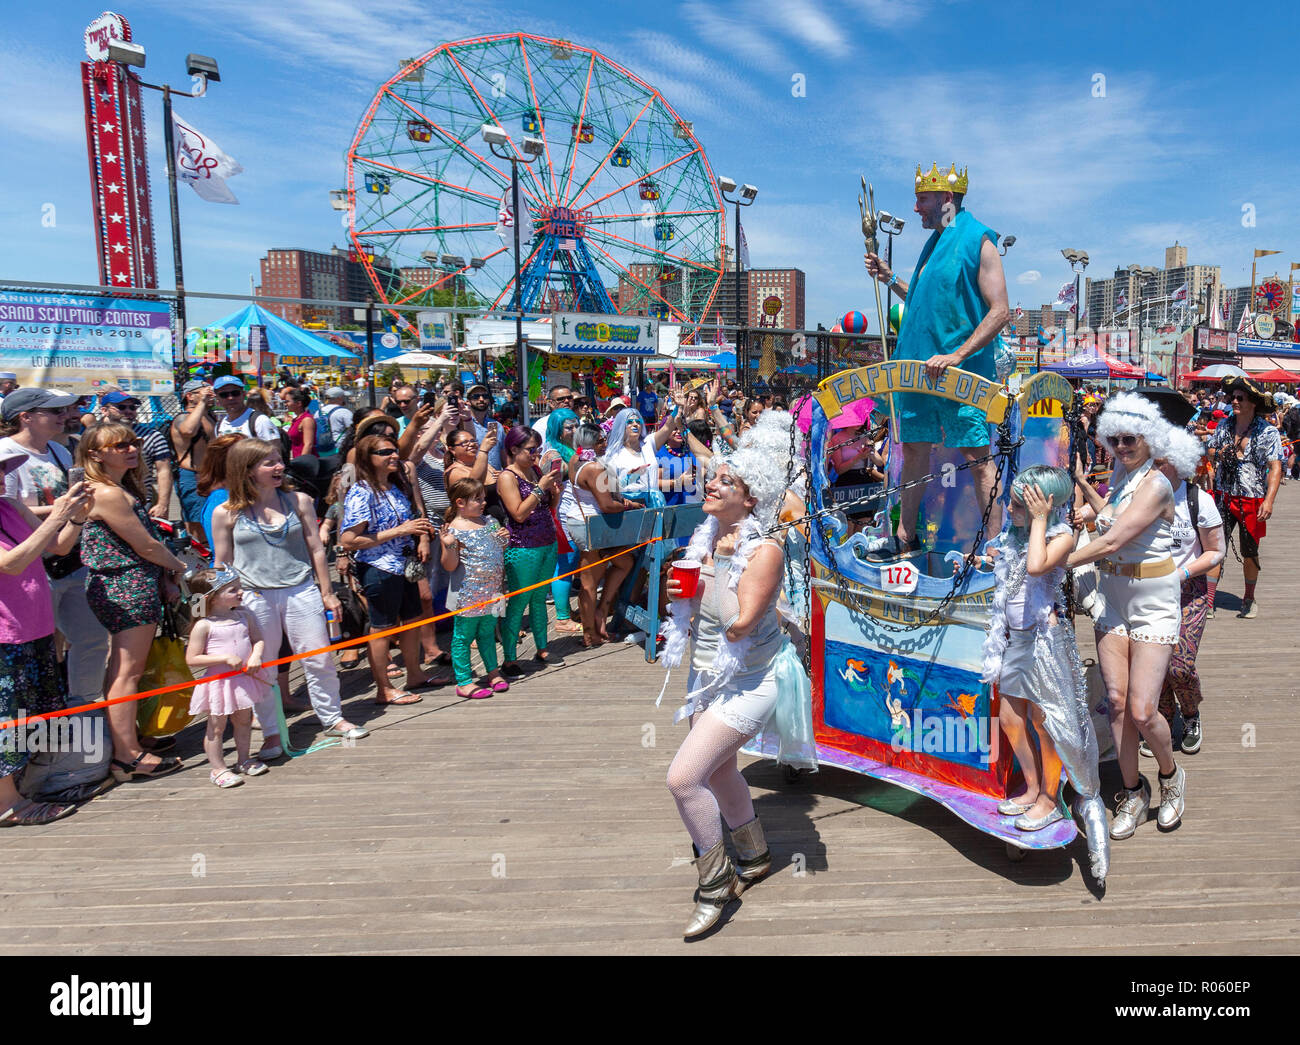 People having fun watching the Annual Mermaid Parade at Coney Island, Brooklyn, New York. - Stock Image